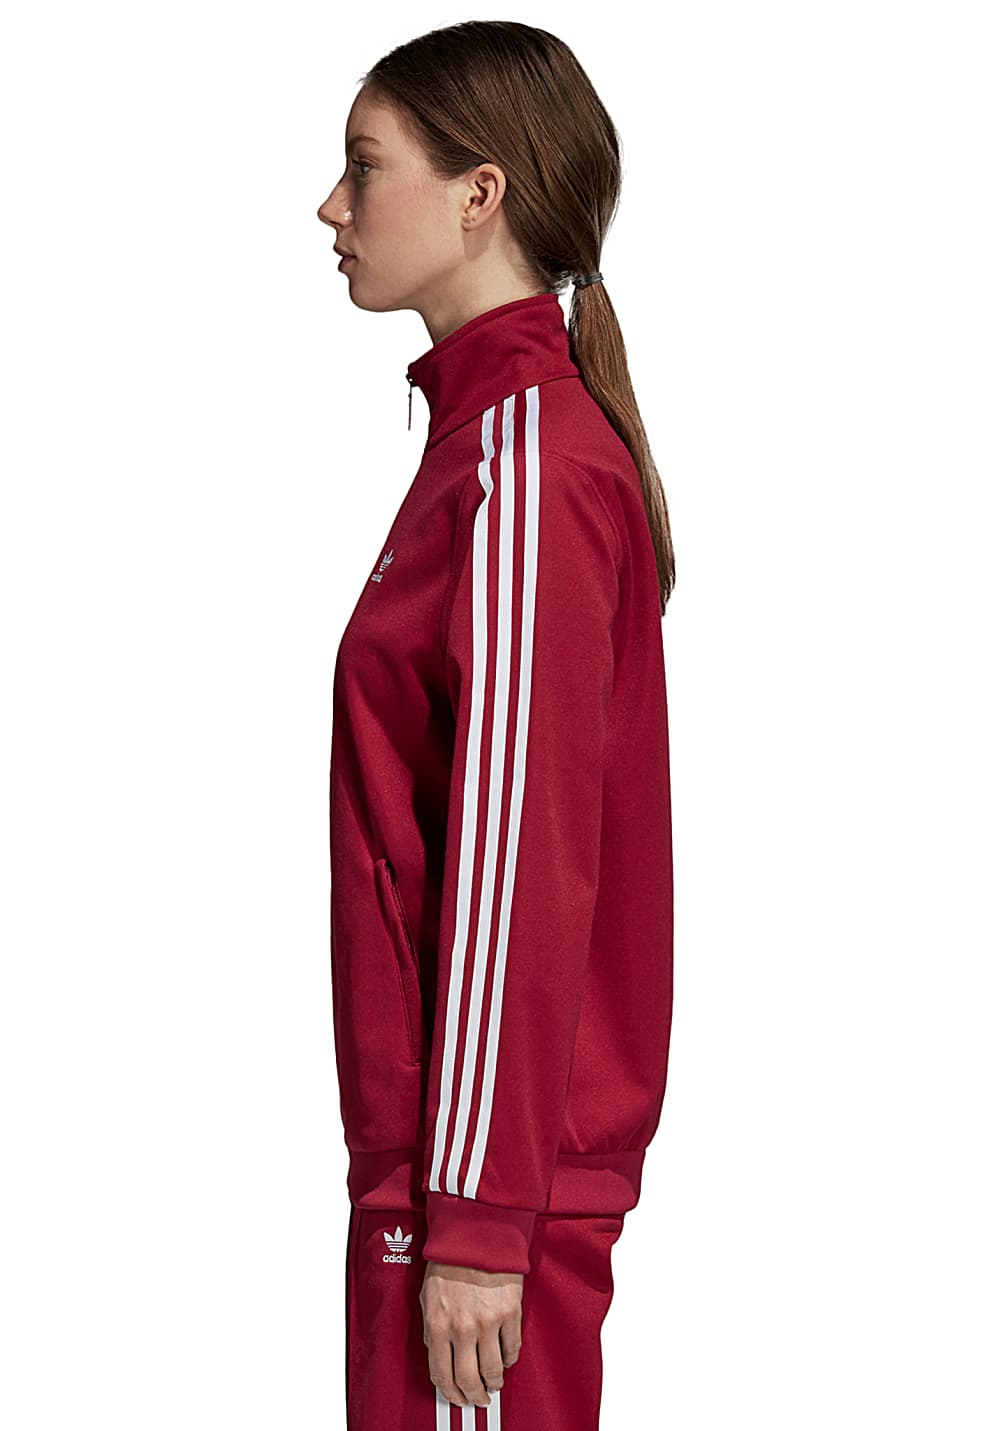 new images of authentic quality stable quality ADIDAS ORIGINALS Contemp Bb - Trainingsjack voor Dames - Rood